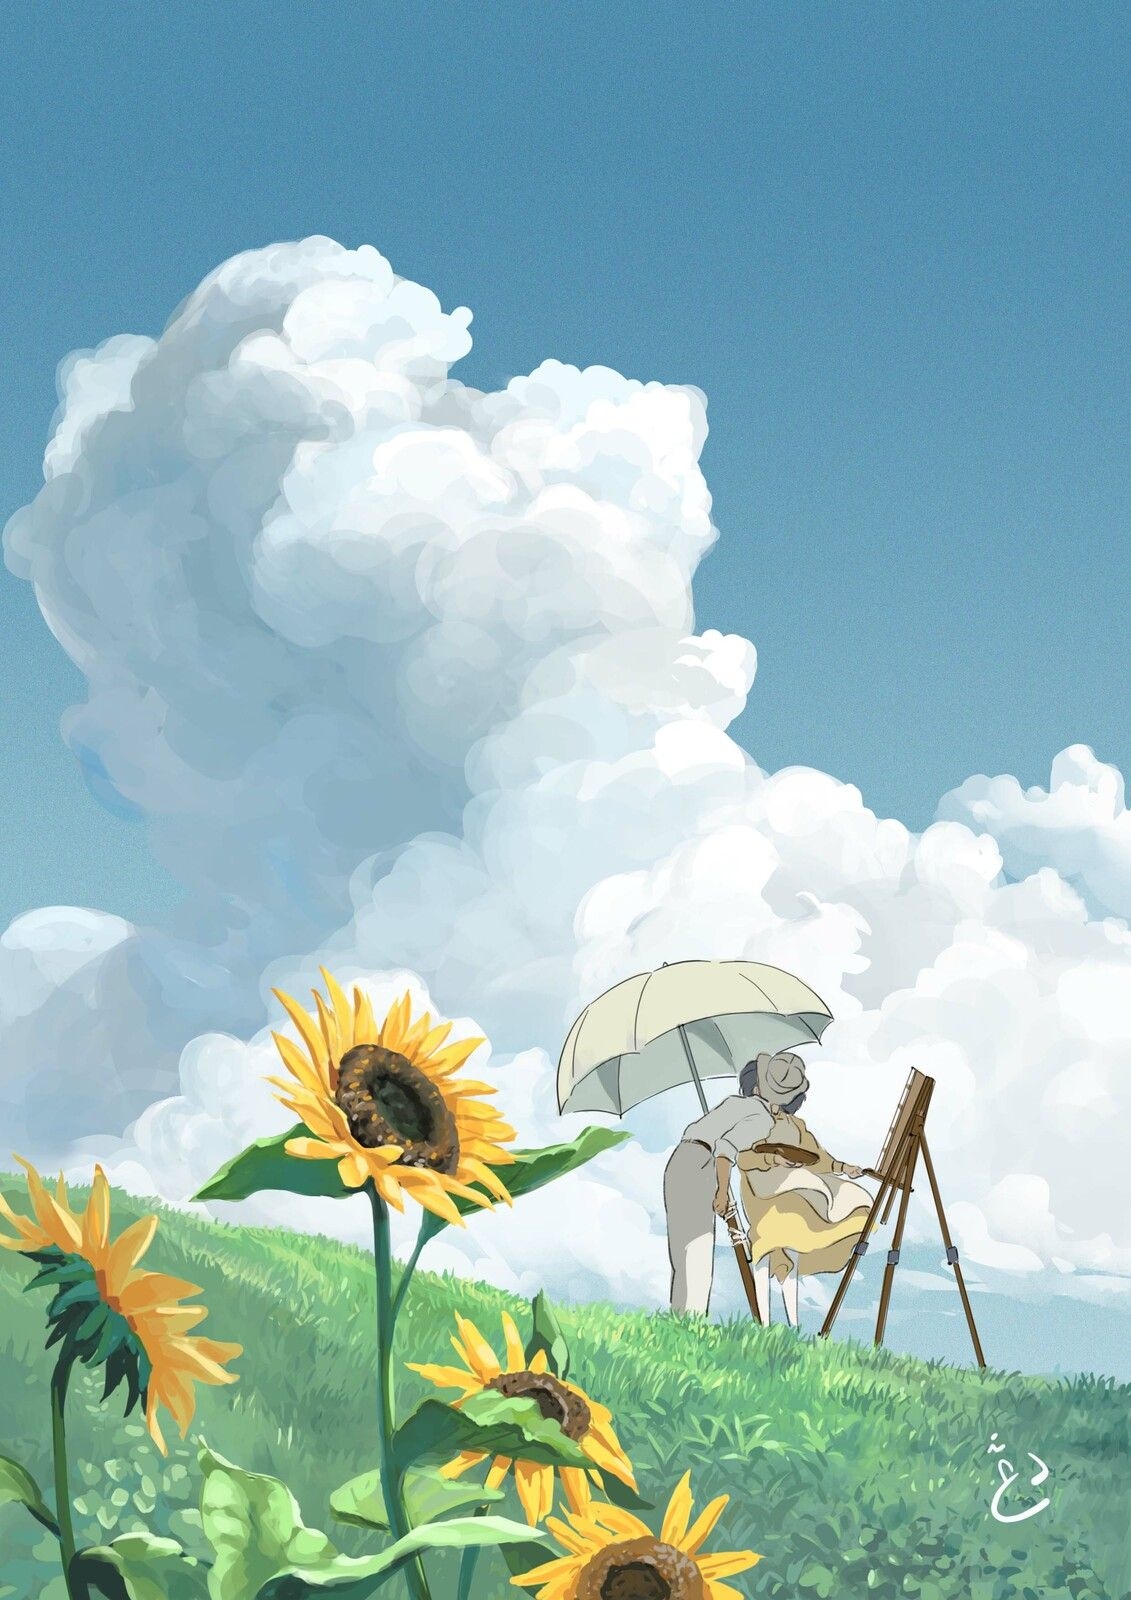 Pin By Cris Nolorve On Girasol In 2020 Anime Scenery Ghibli Artwork Studio Ghibli Background